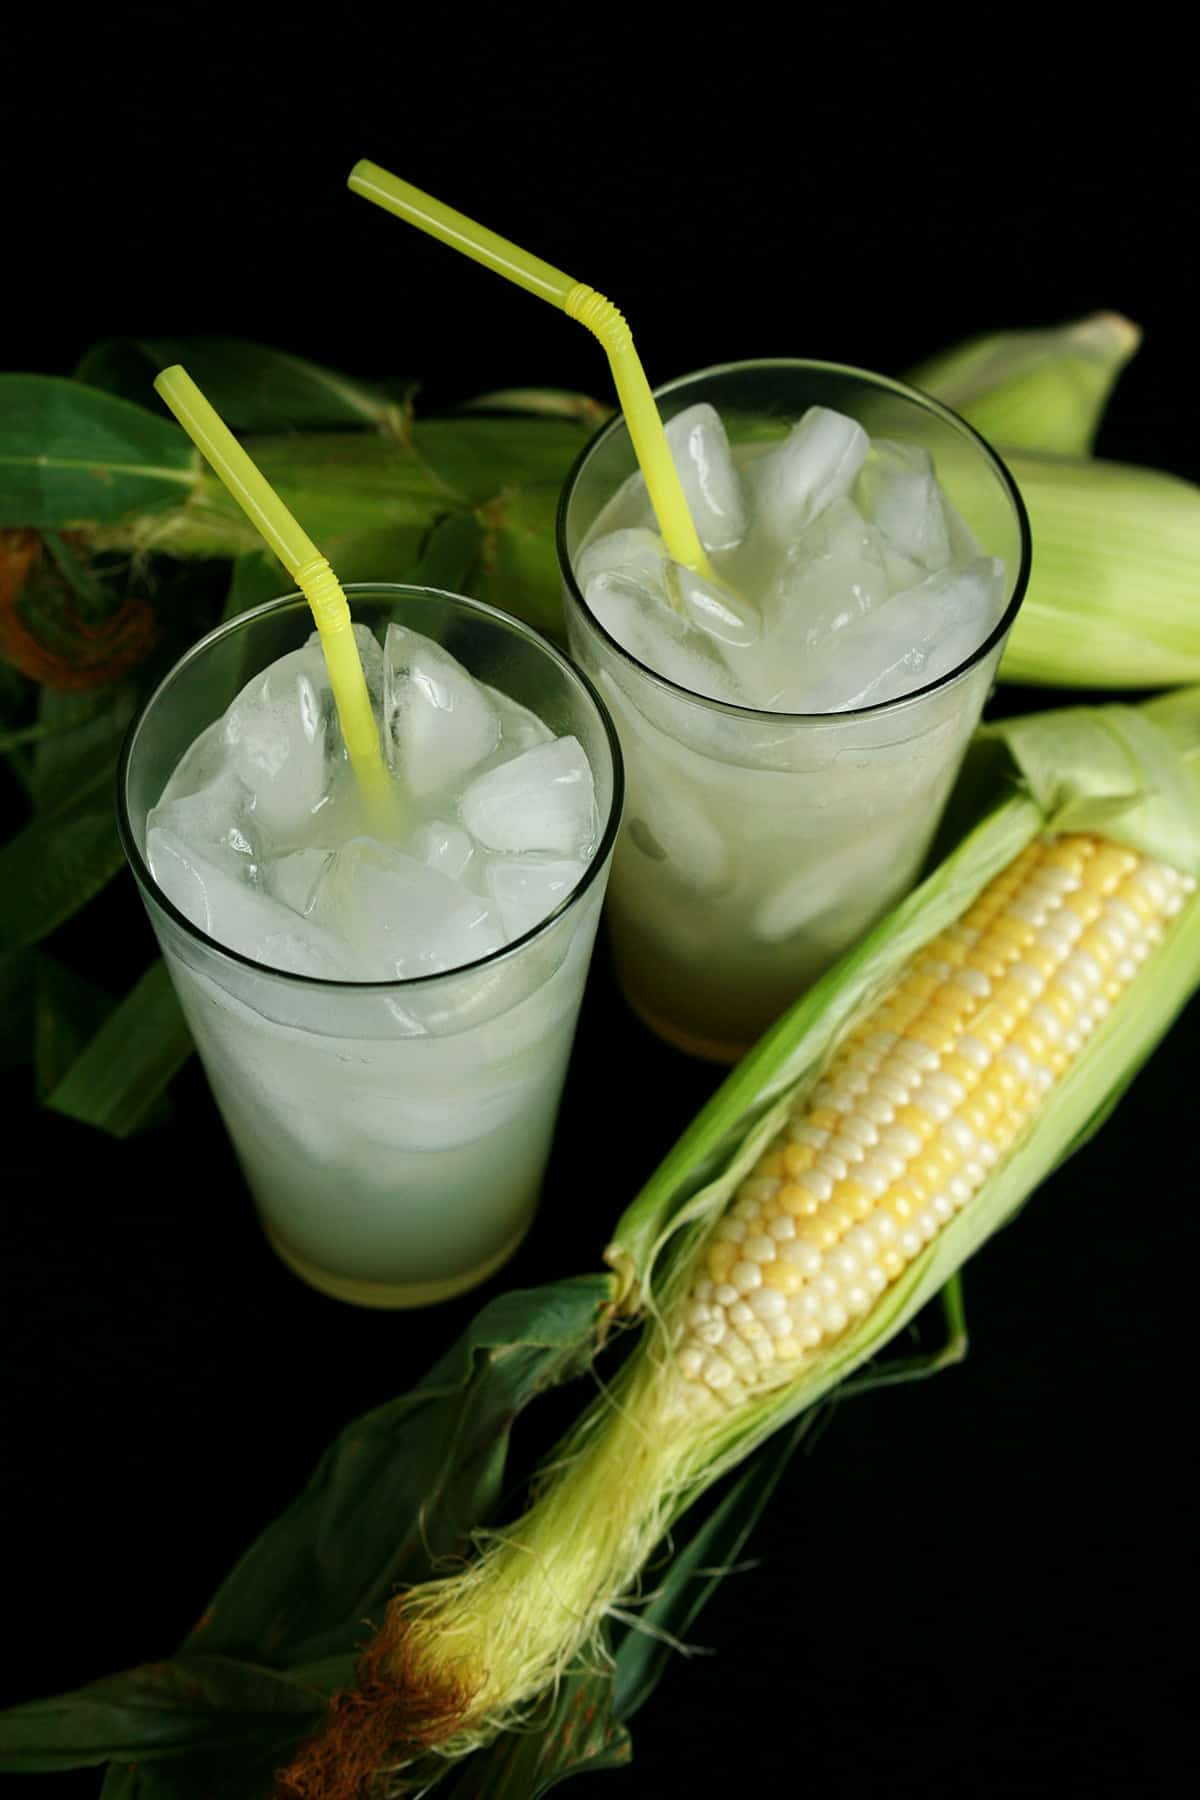 Two tall glasses of Quick Sweet Corn Soda.  The soda is pale yellow, with ice cubes and yellow straws.  There are two ears of corn next to the glasses.